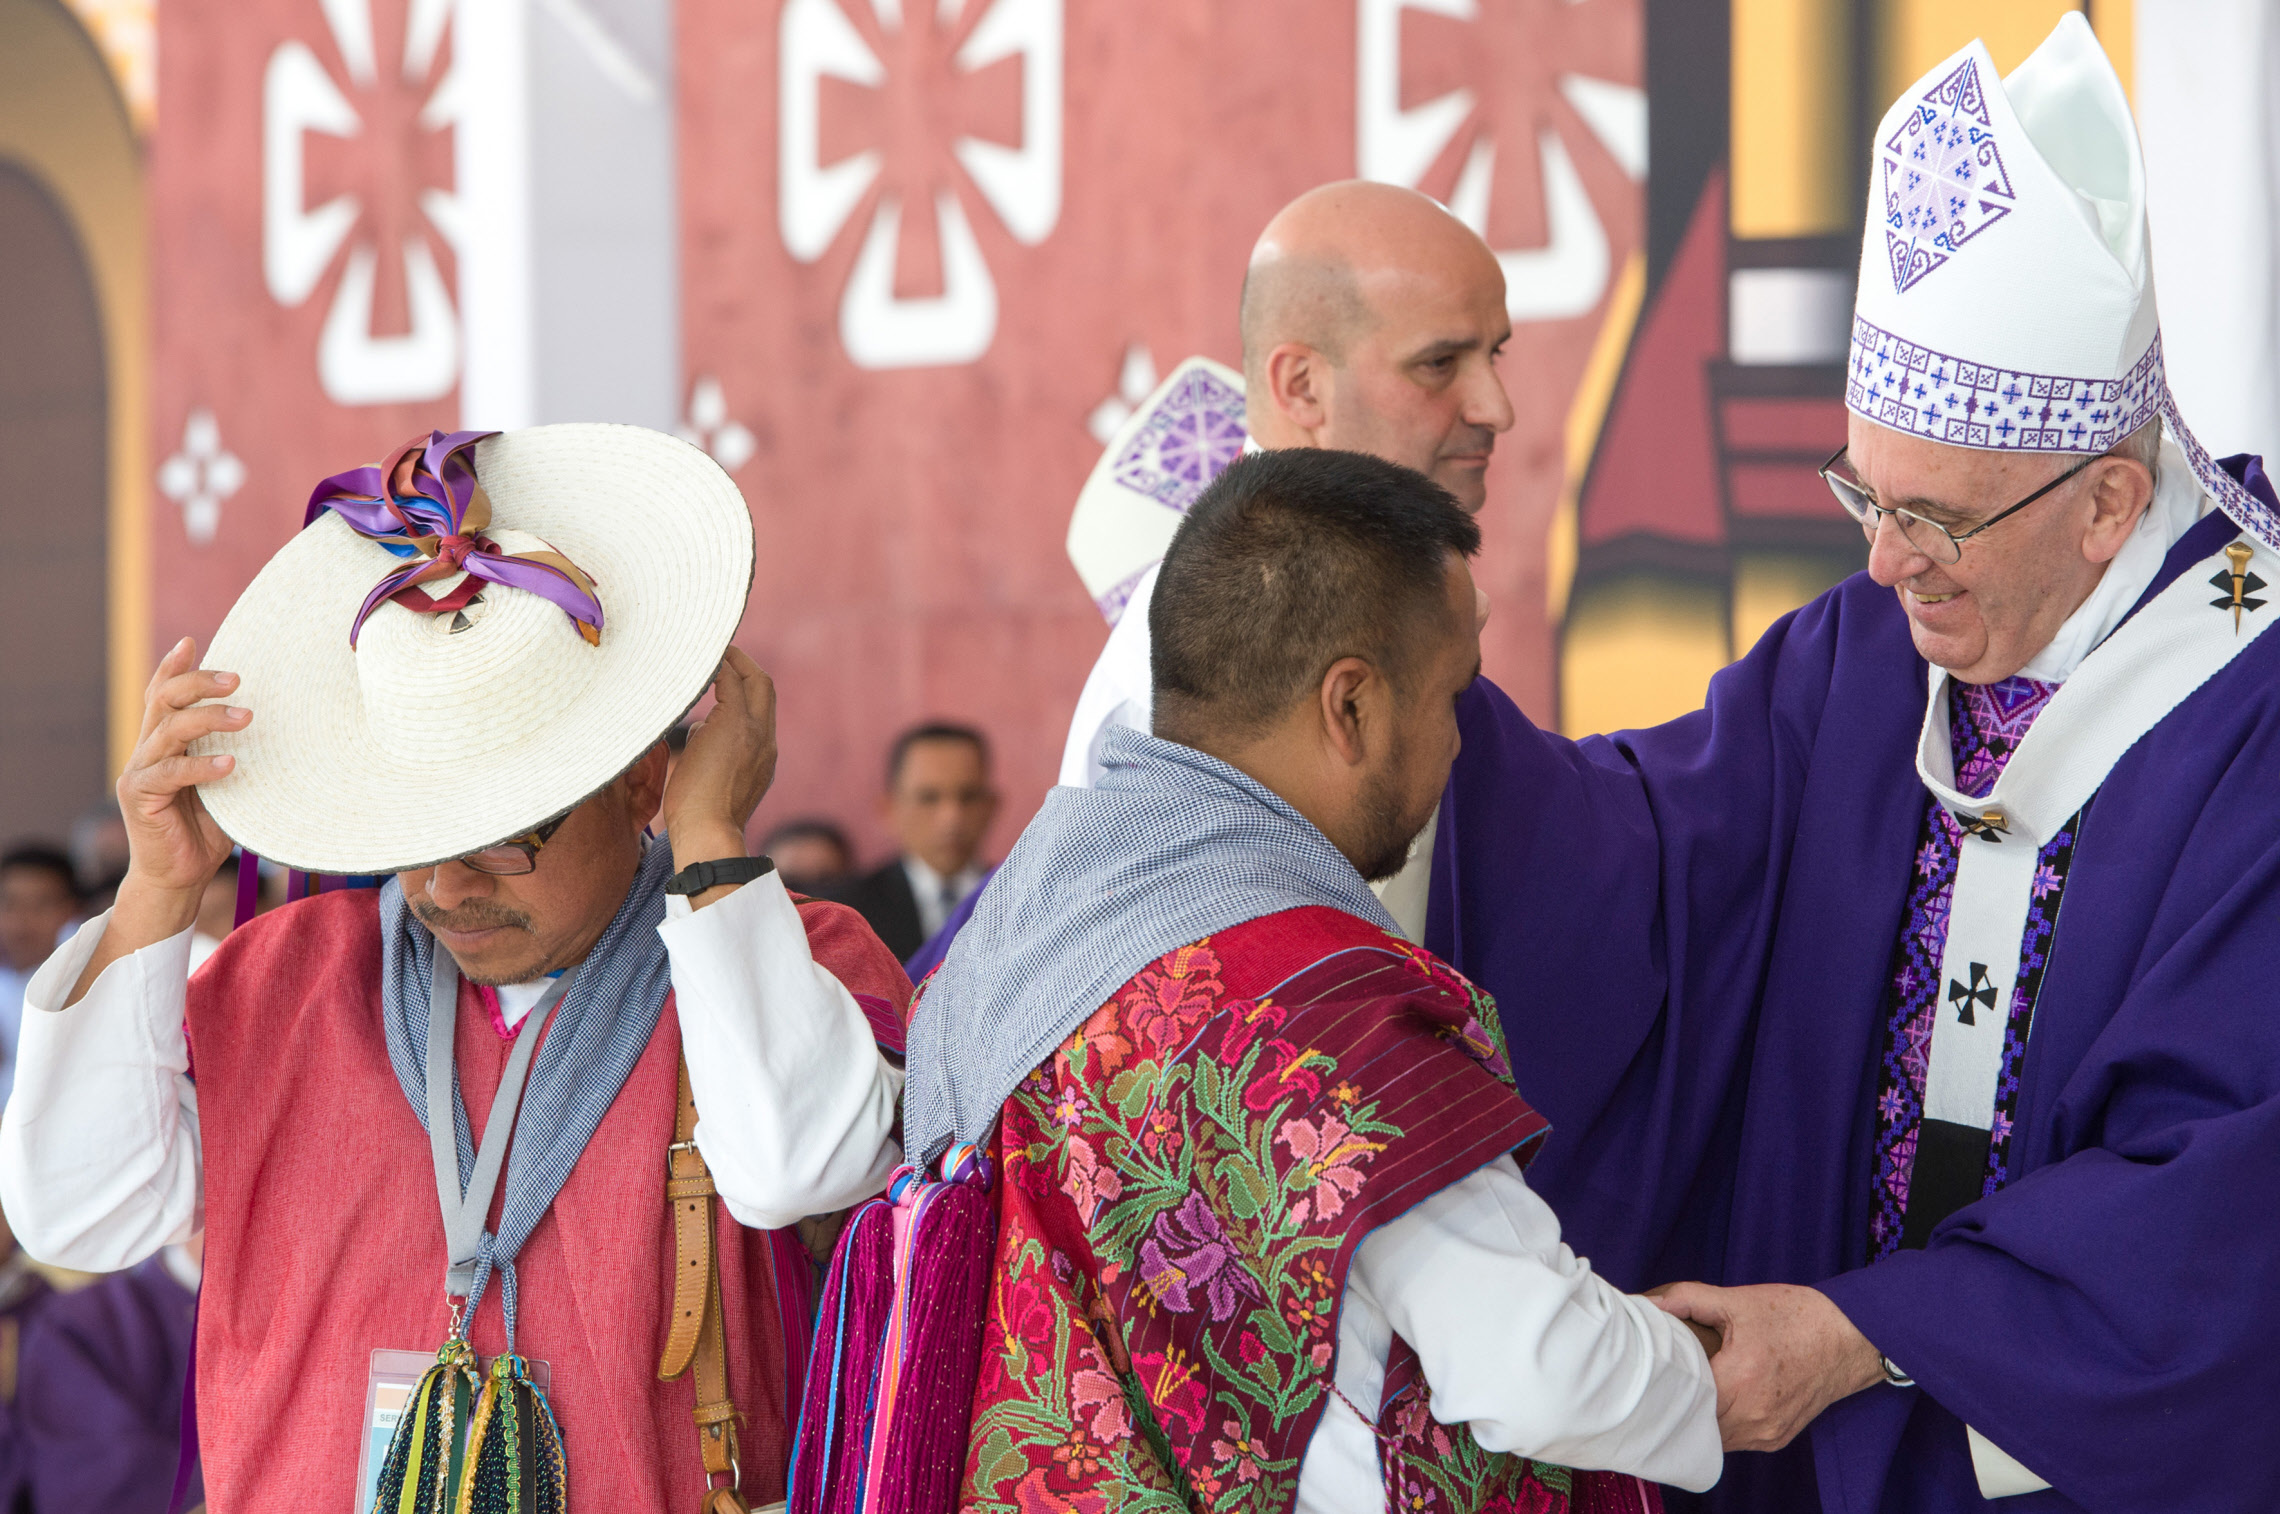 15 février 2016 : Le pape François célèbre une messe à San Cristobal de Las Casas, dans le Chiapas. Messe en hommage aux peuples indigènes et à leur culture. San Cristobal de Las Casas, Mexique. DIFFUSION PRESSE UNIQUEMENT. EDITORIAL USE ONLY. NOT FOR SALE FOR MARKETING OR ADVERTISING CAMPAIGNS. February 15, 2016: Pope Francis celebrates a Mass in San Cristobal delas Casas, Mexico.